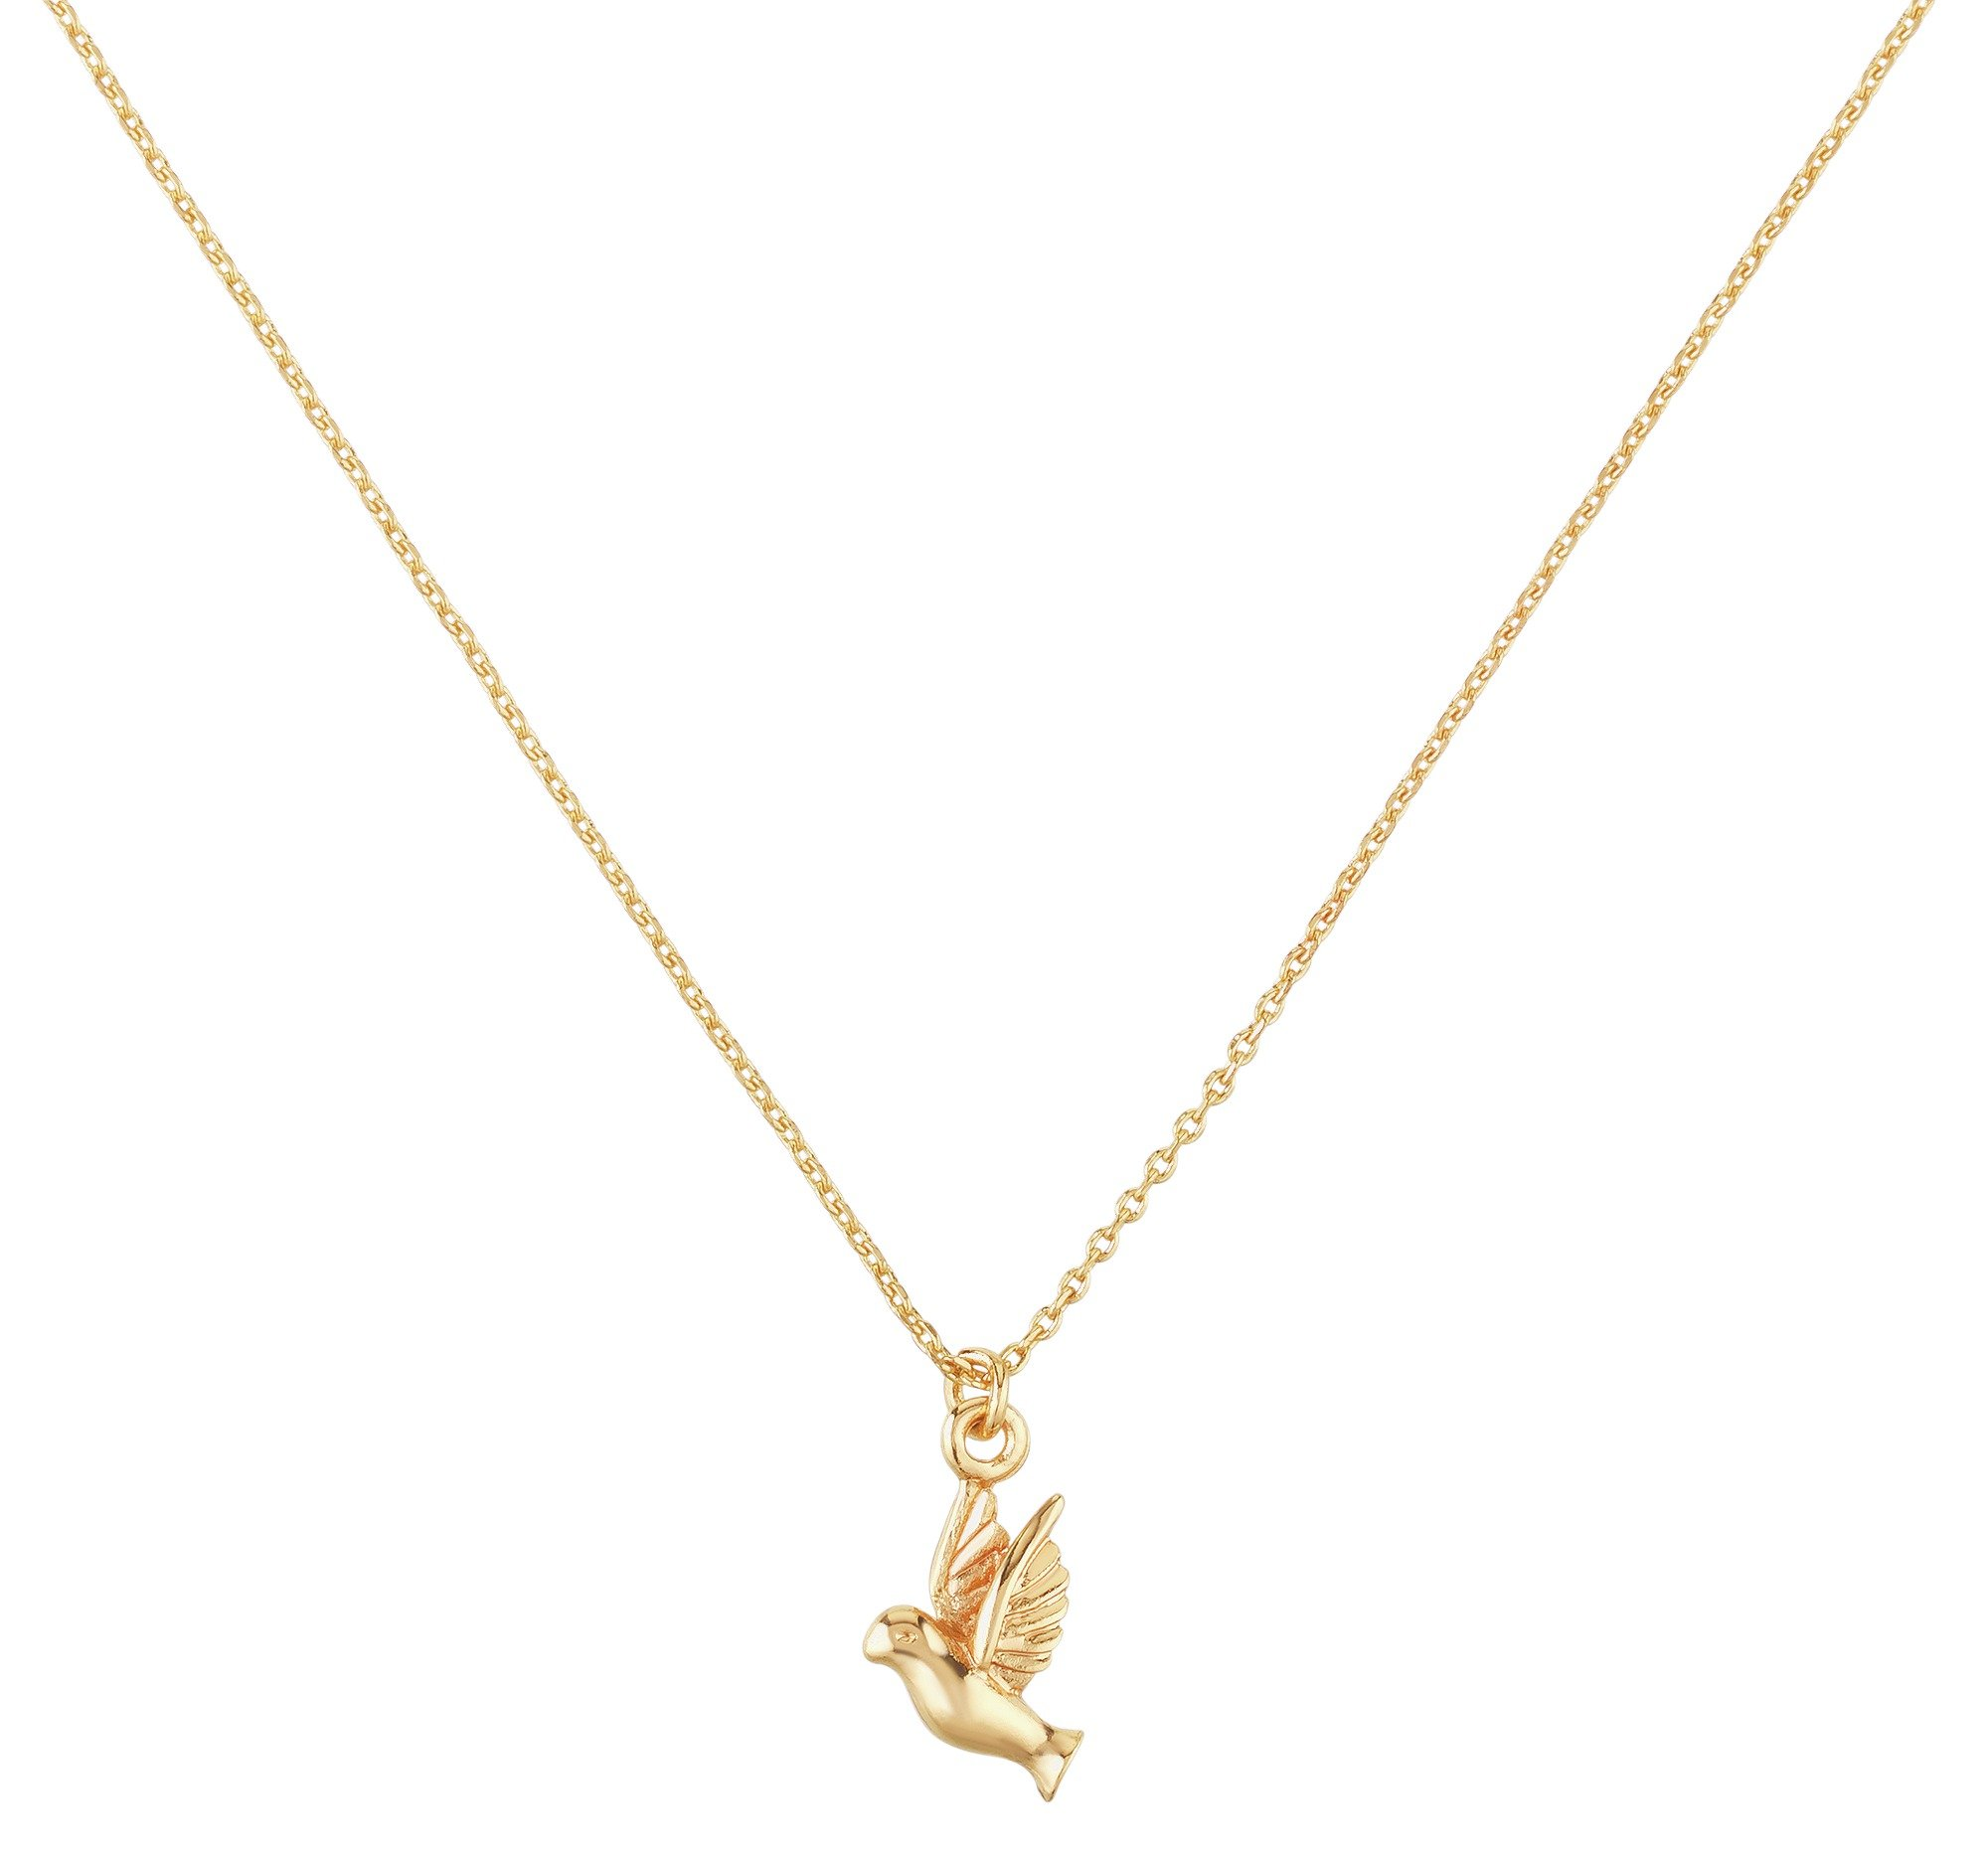 Image of Amelia Grace - Hummingbird Gold - Colour Necklace.